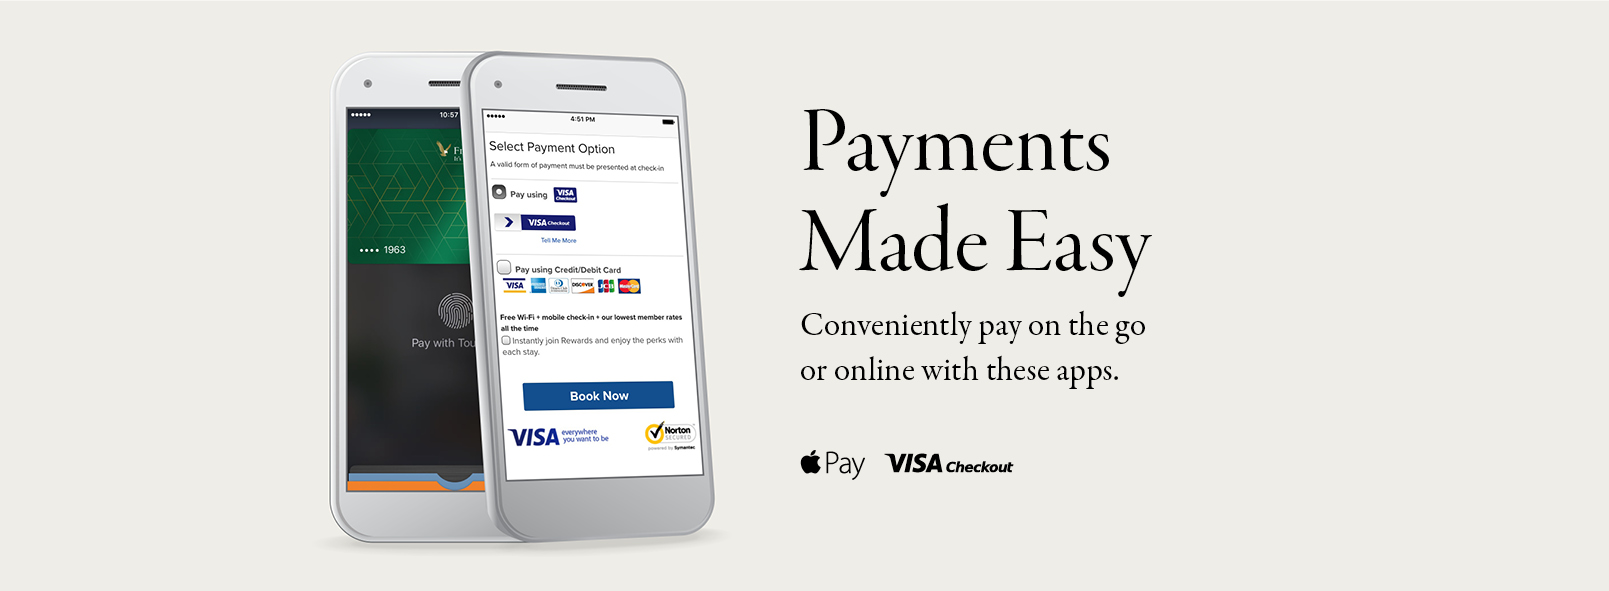 Digital payments made easy via Apple Pay and Visa Checkout